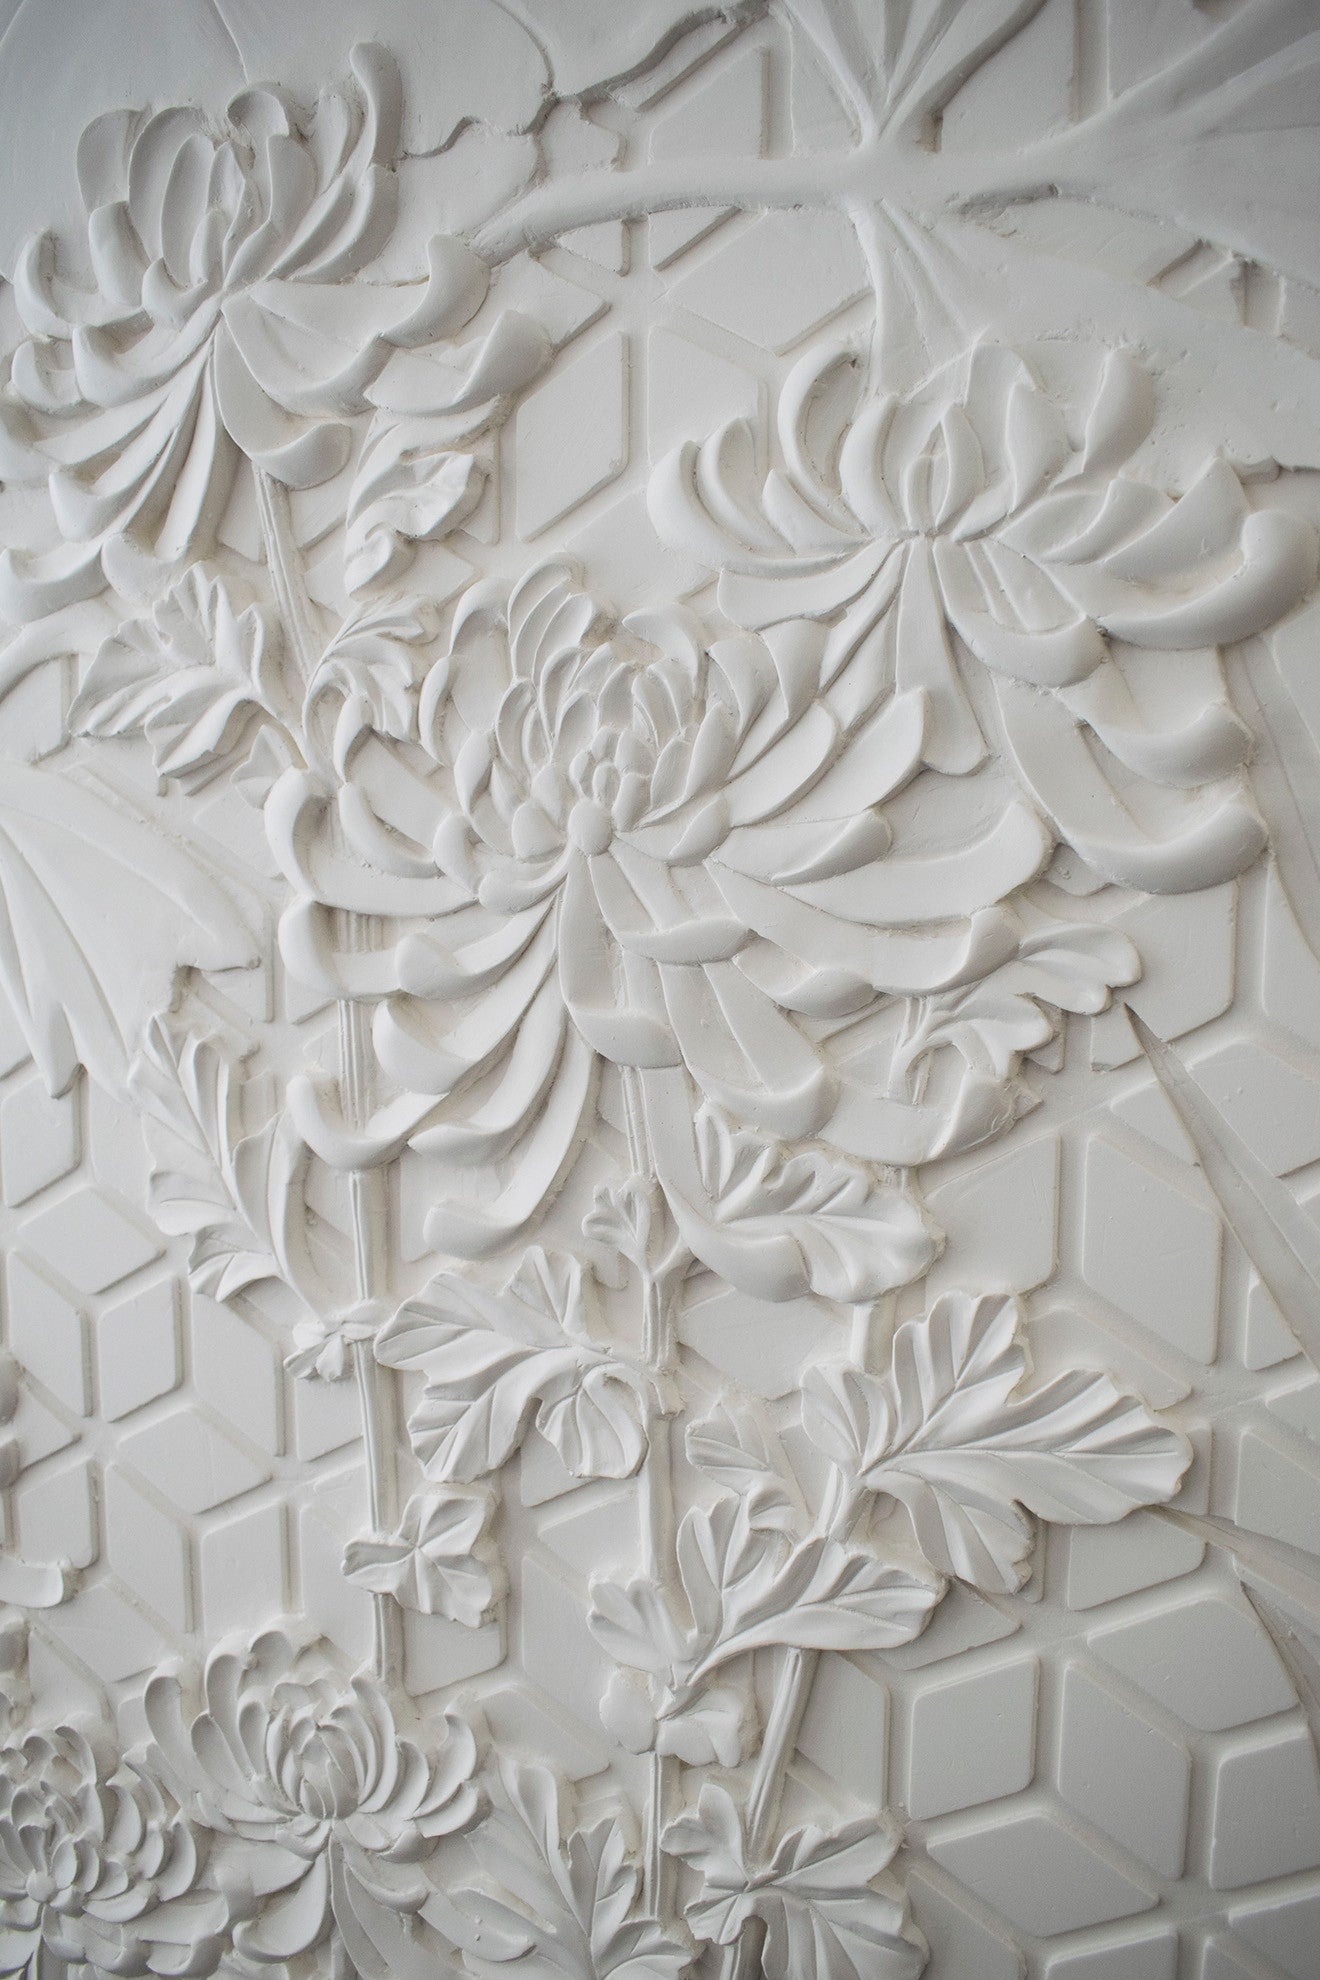 Staff Decor floral wall moulding design